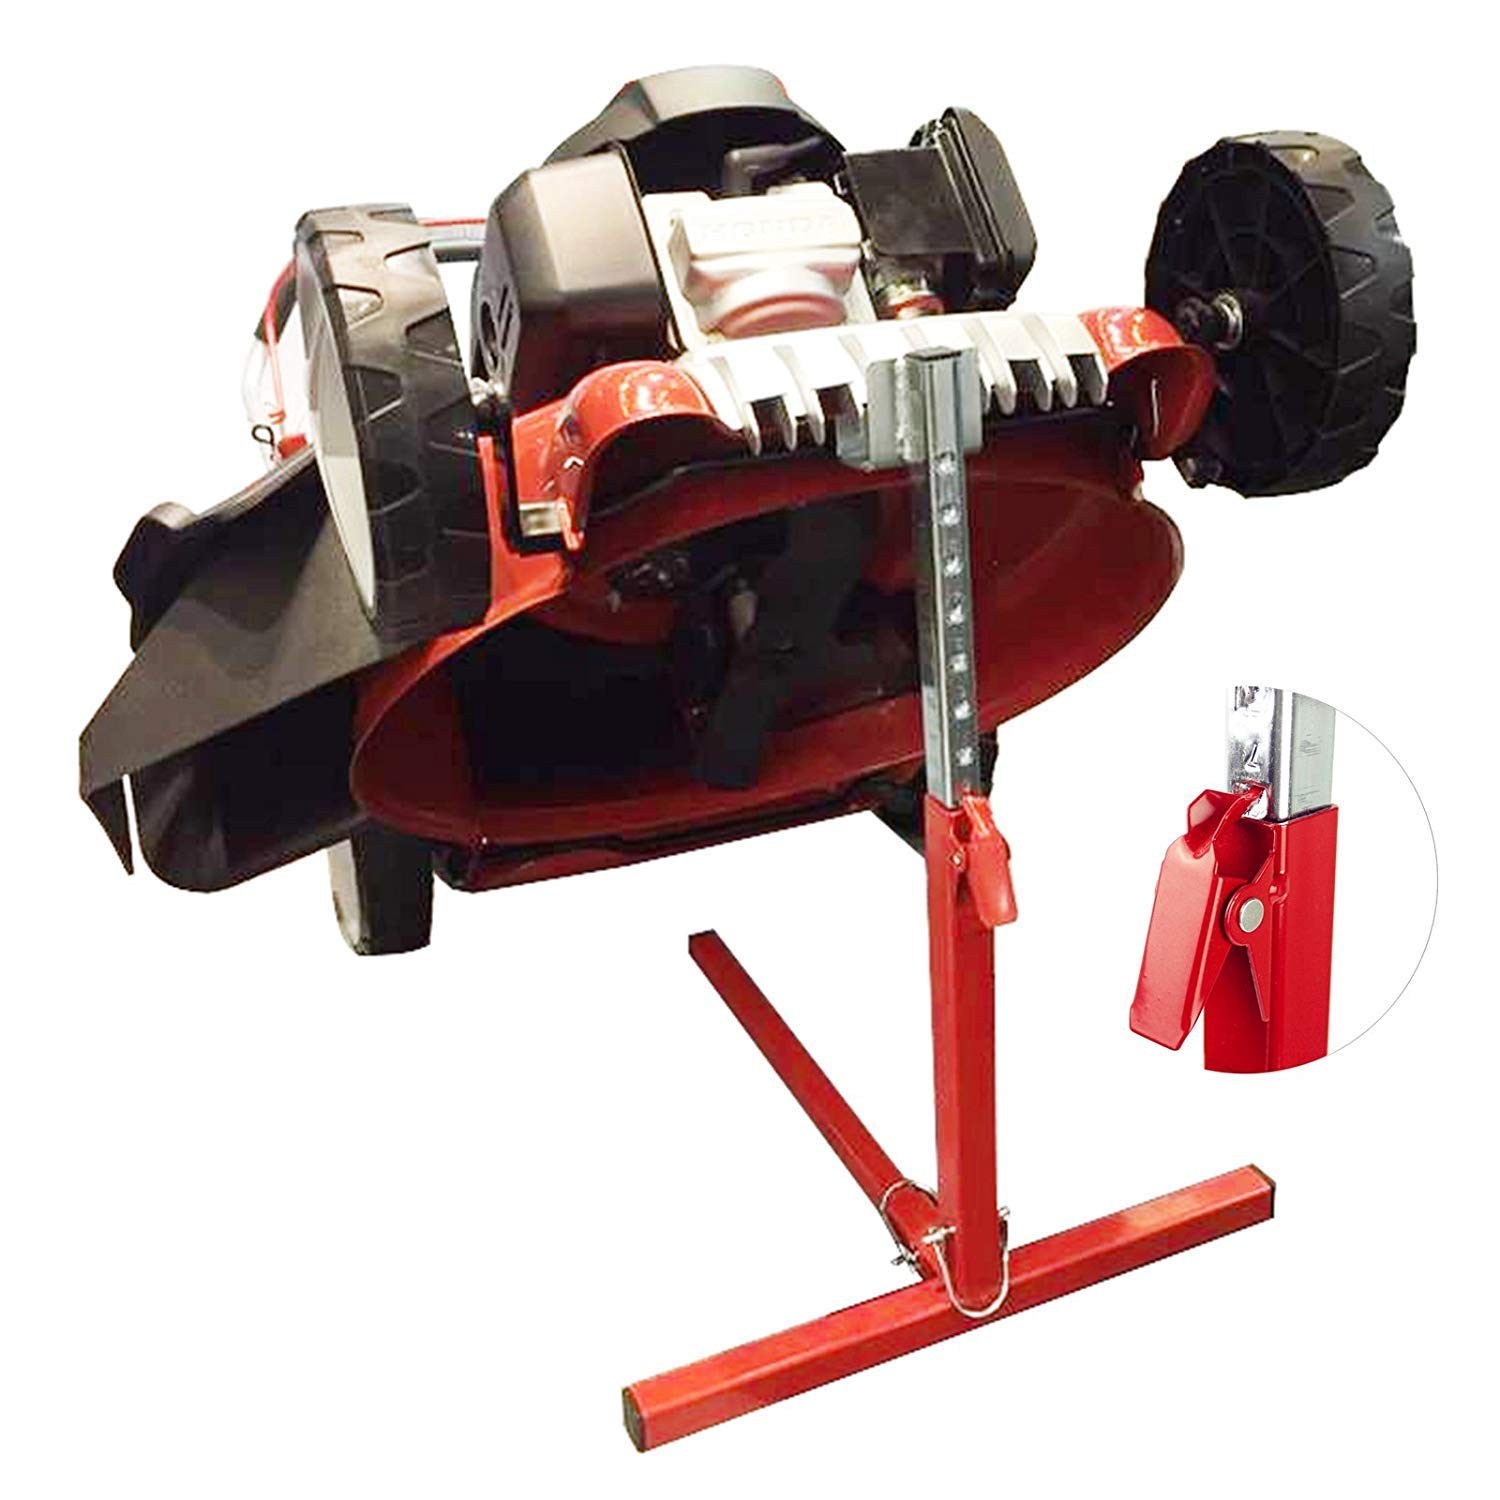 Push Lawn Mower Lift Tools, COPACHI Garden High Duty Holder for Push Mower Lawn With Hight Control Key and Lawn Mower Clearance--22''Hight/110lb Weight Capacity and Keep With 3 Year Warranty by COPACHI